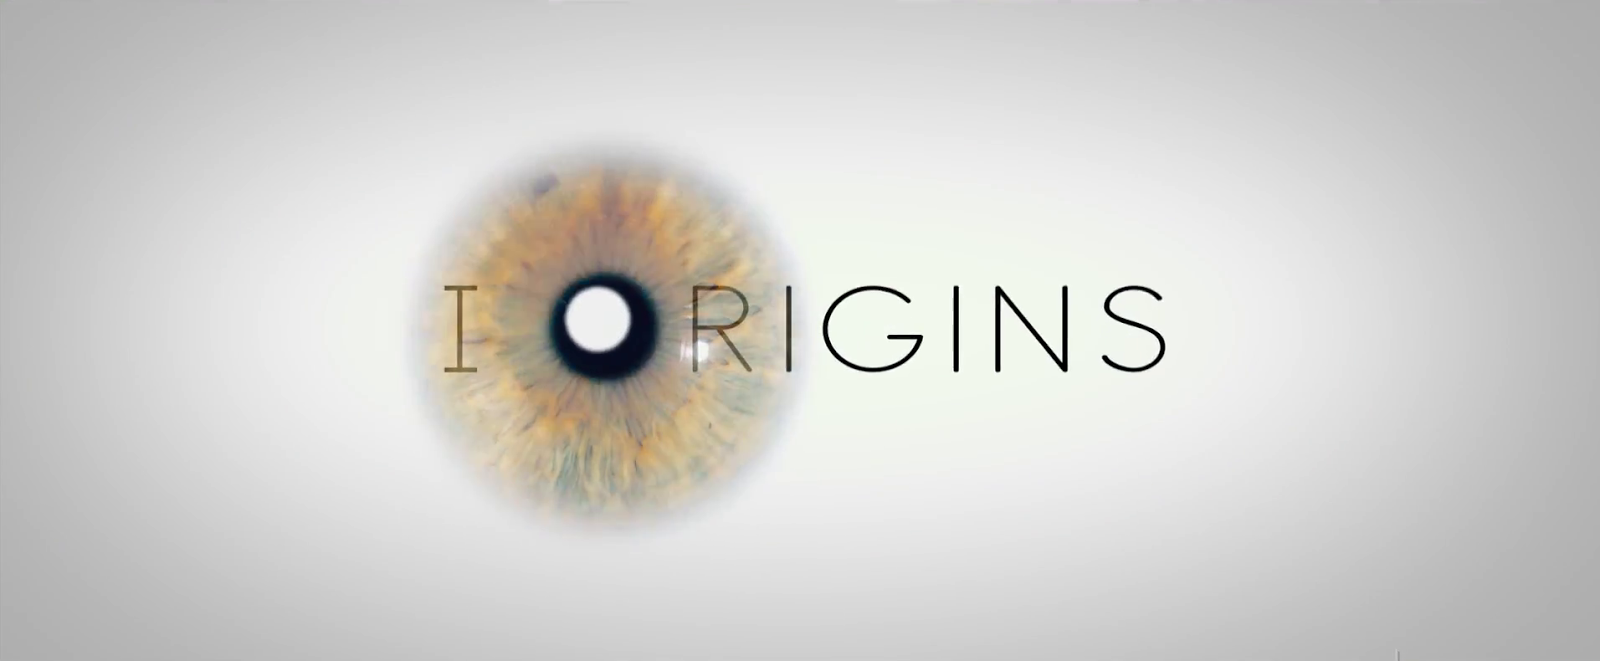 I Origins (2014) 1080p. [Audio Dual]